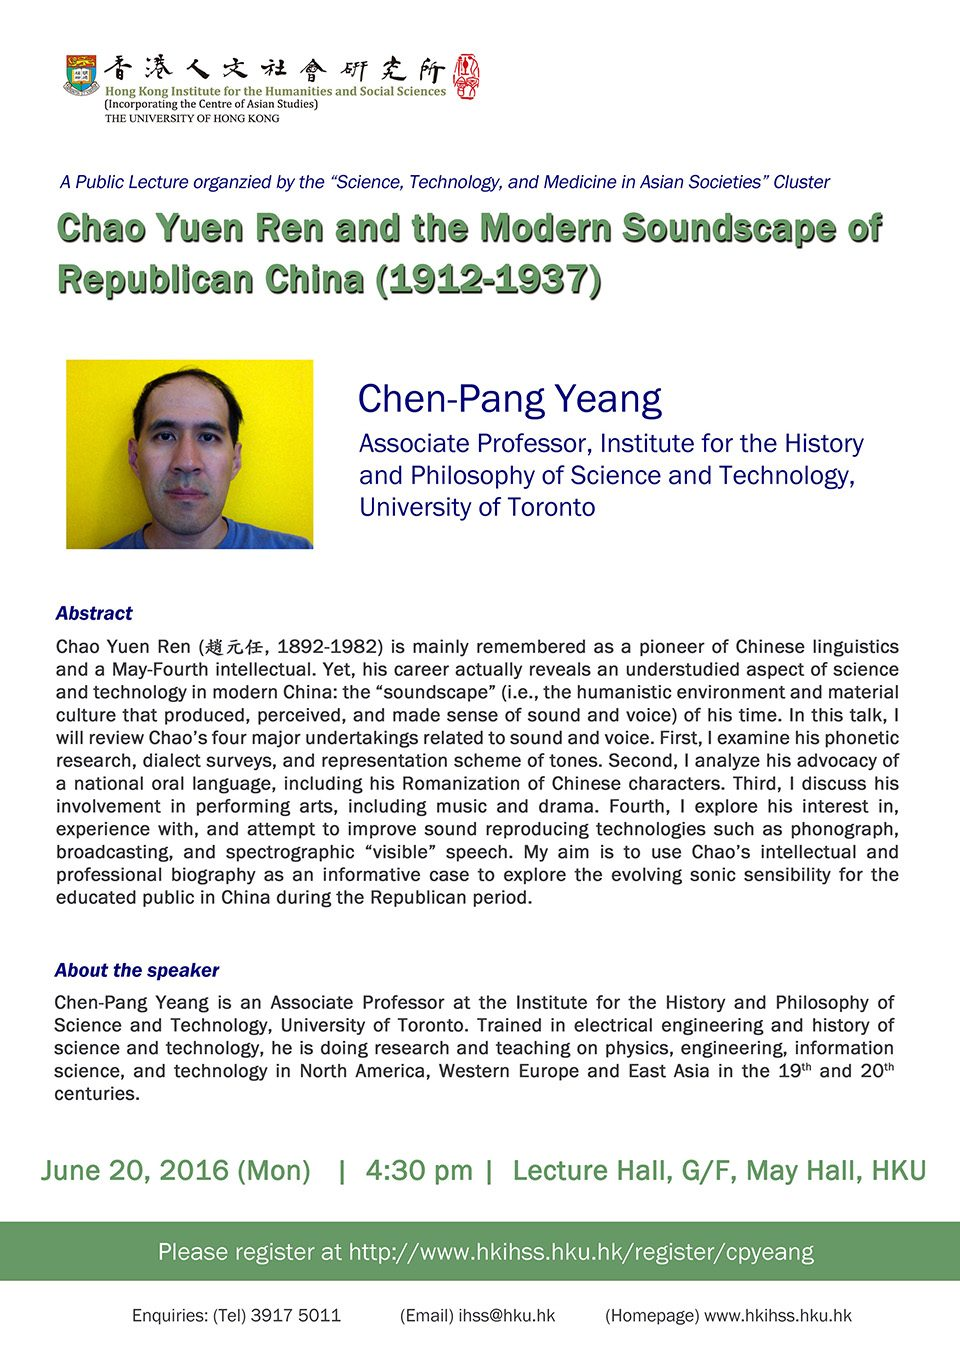 "Public Lecture on ""Chao Yuen Ren and the Modern Soundscape of Republican China (1912-1937)"" by Dr. Chen-Pang Yeang (June 20, 2016)"